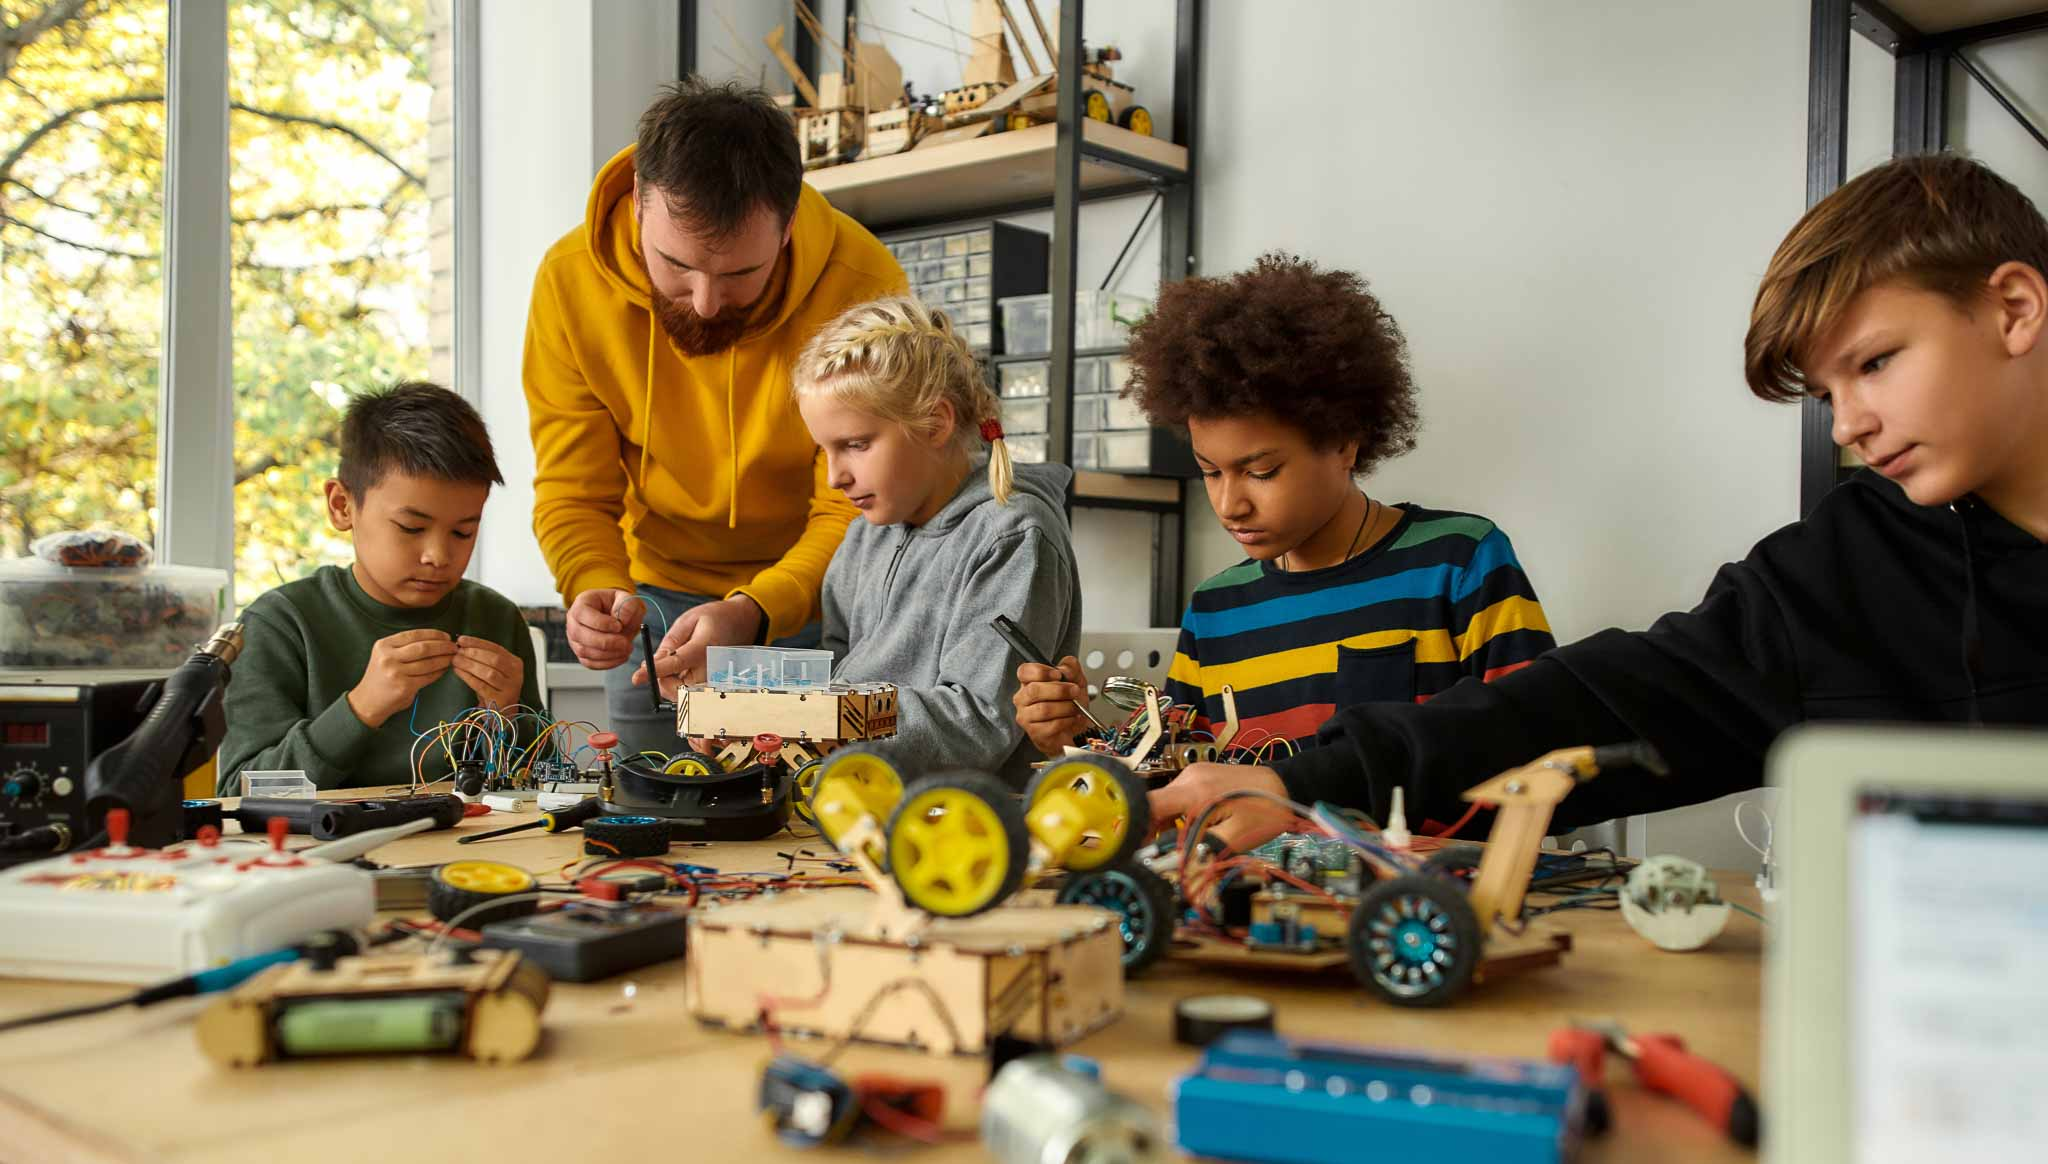 Four children and an adult sit around a colorful table table full of small vehicle components. Some use tools, other are working with adhesives to make small robots.